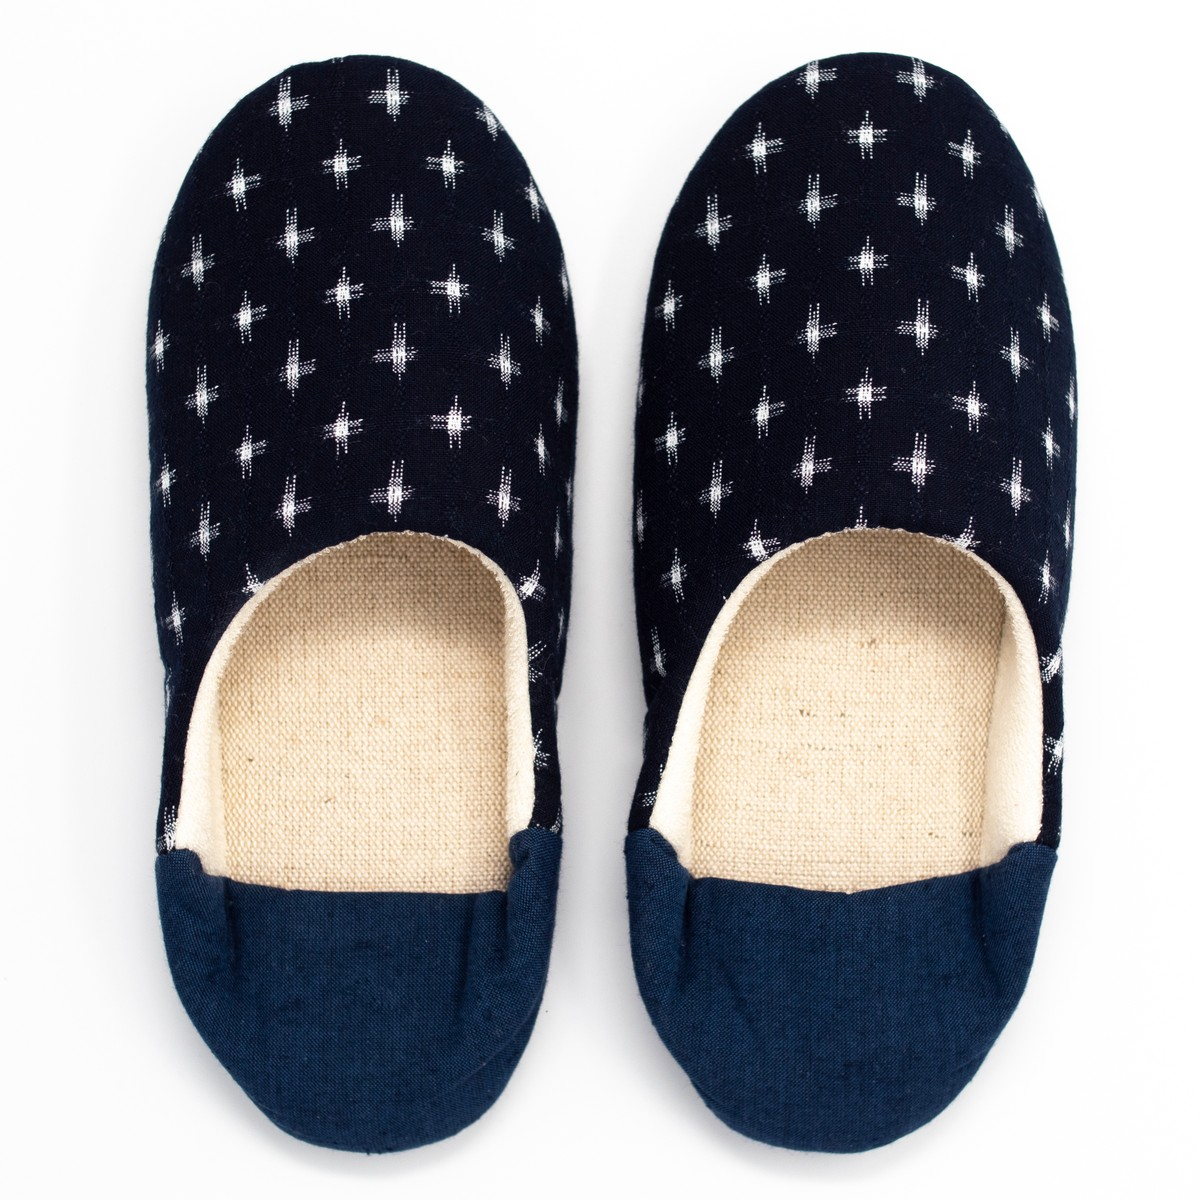 Photo of Indigo Kasuri Babouche Slippers